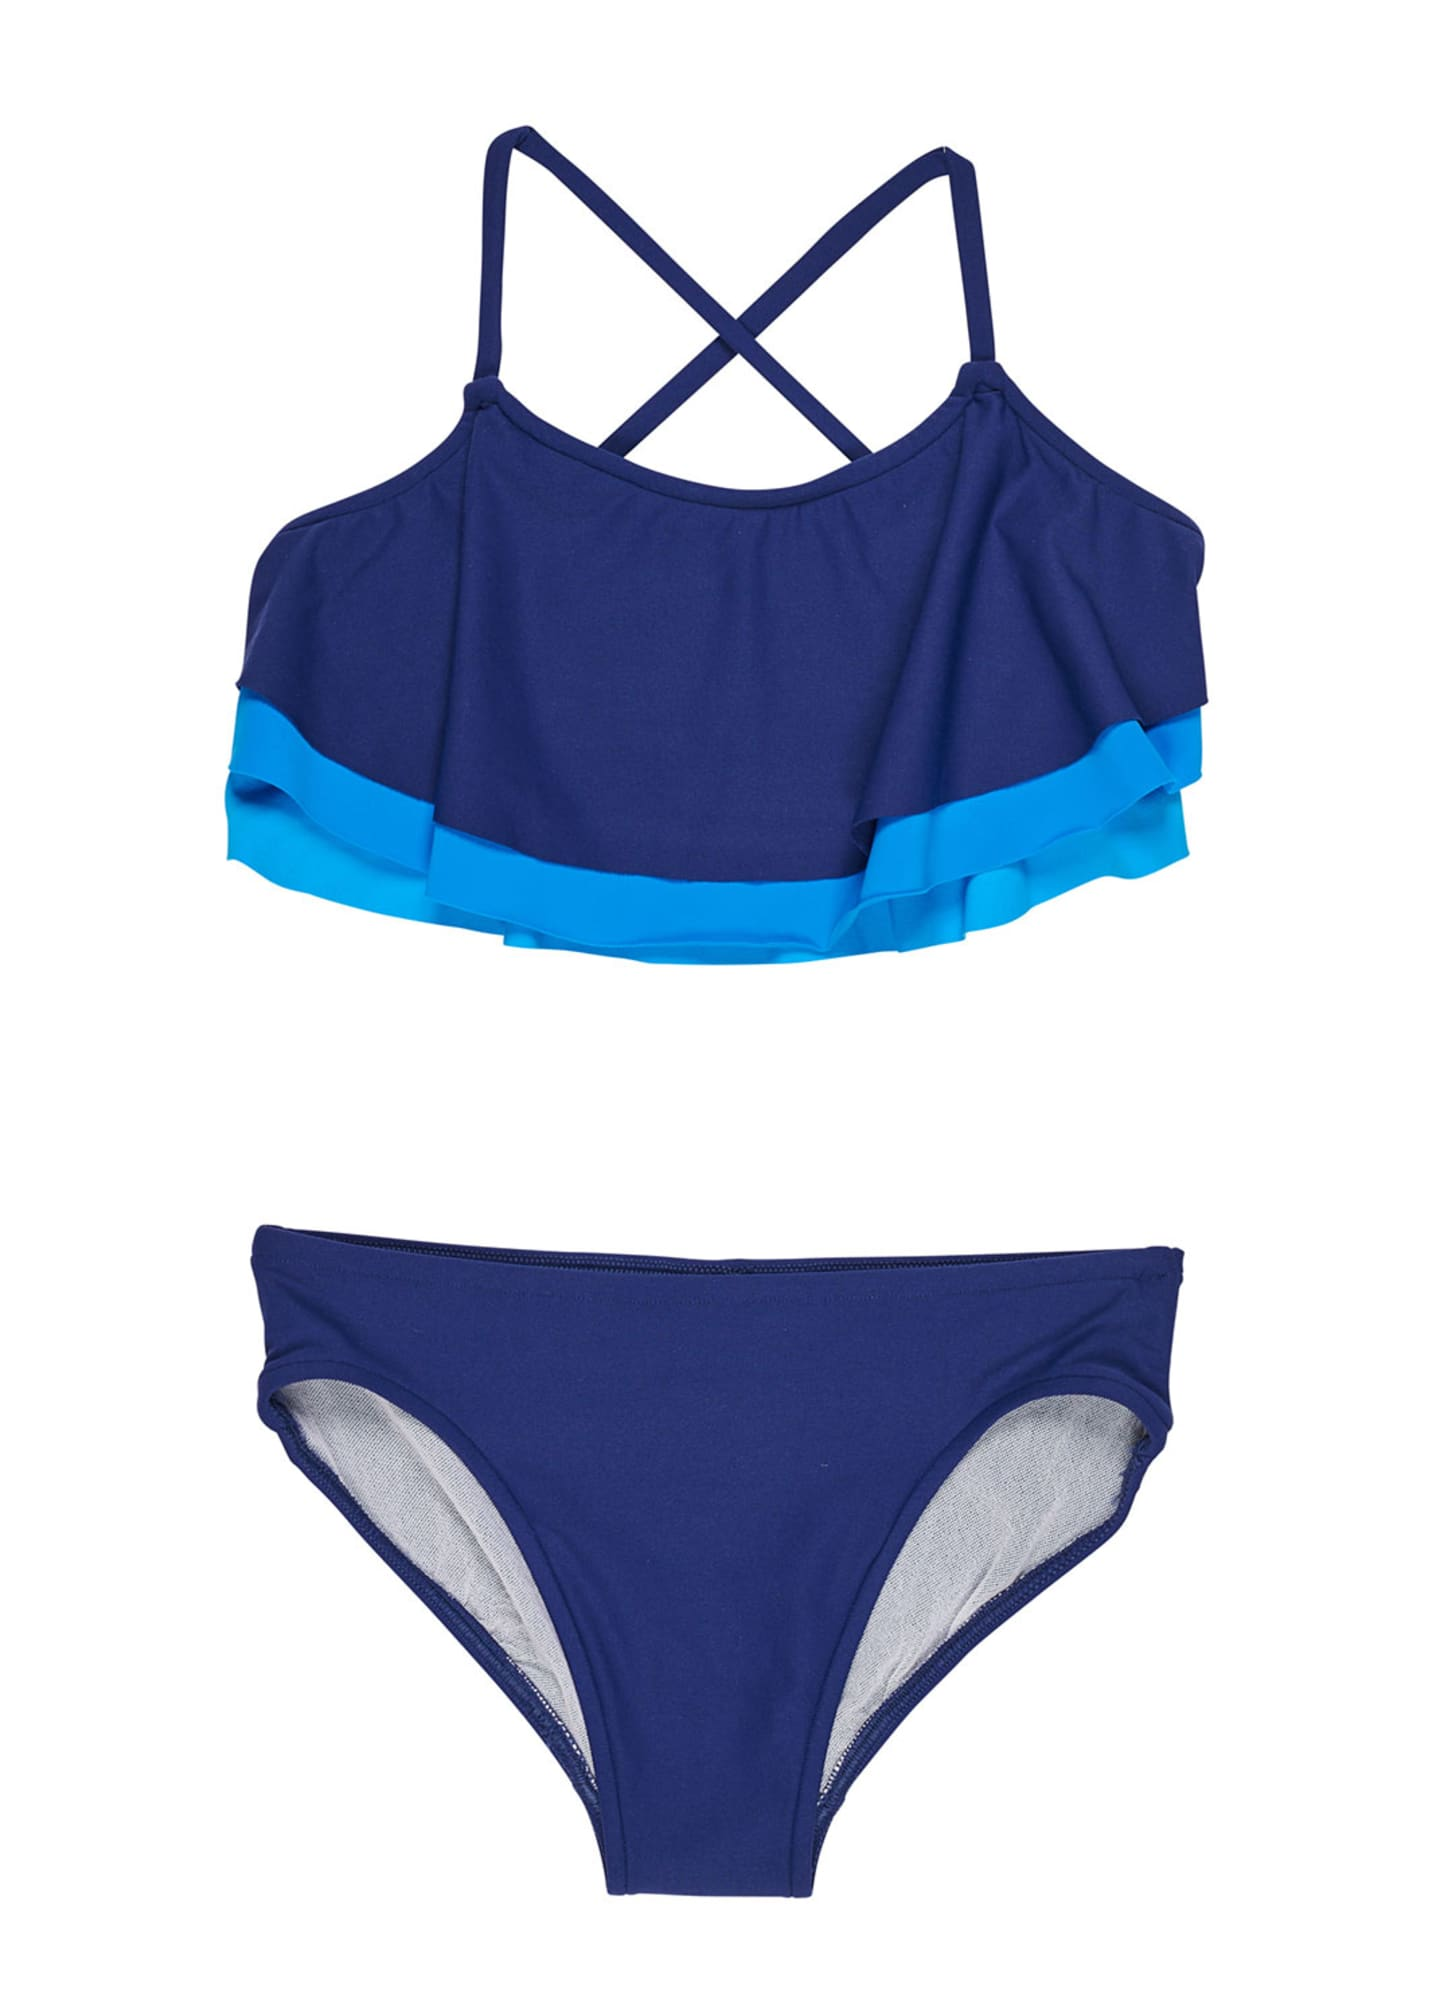 Florence Eiseman Shades of Blue Two-Piece Swimsuit, Size